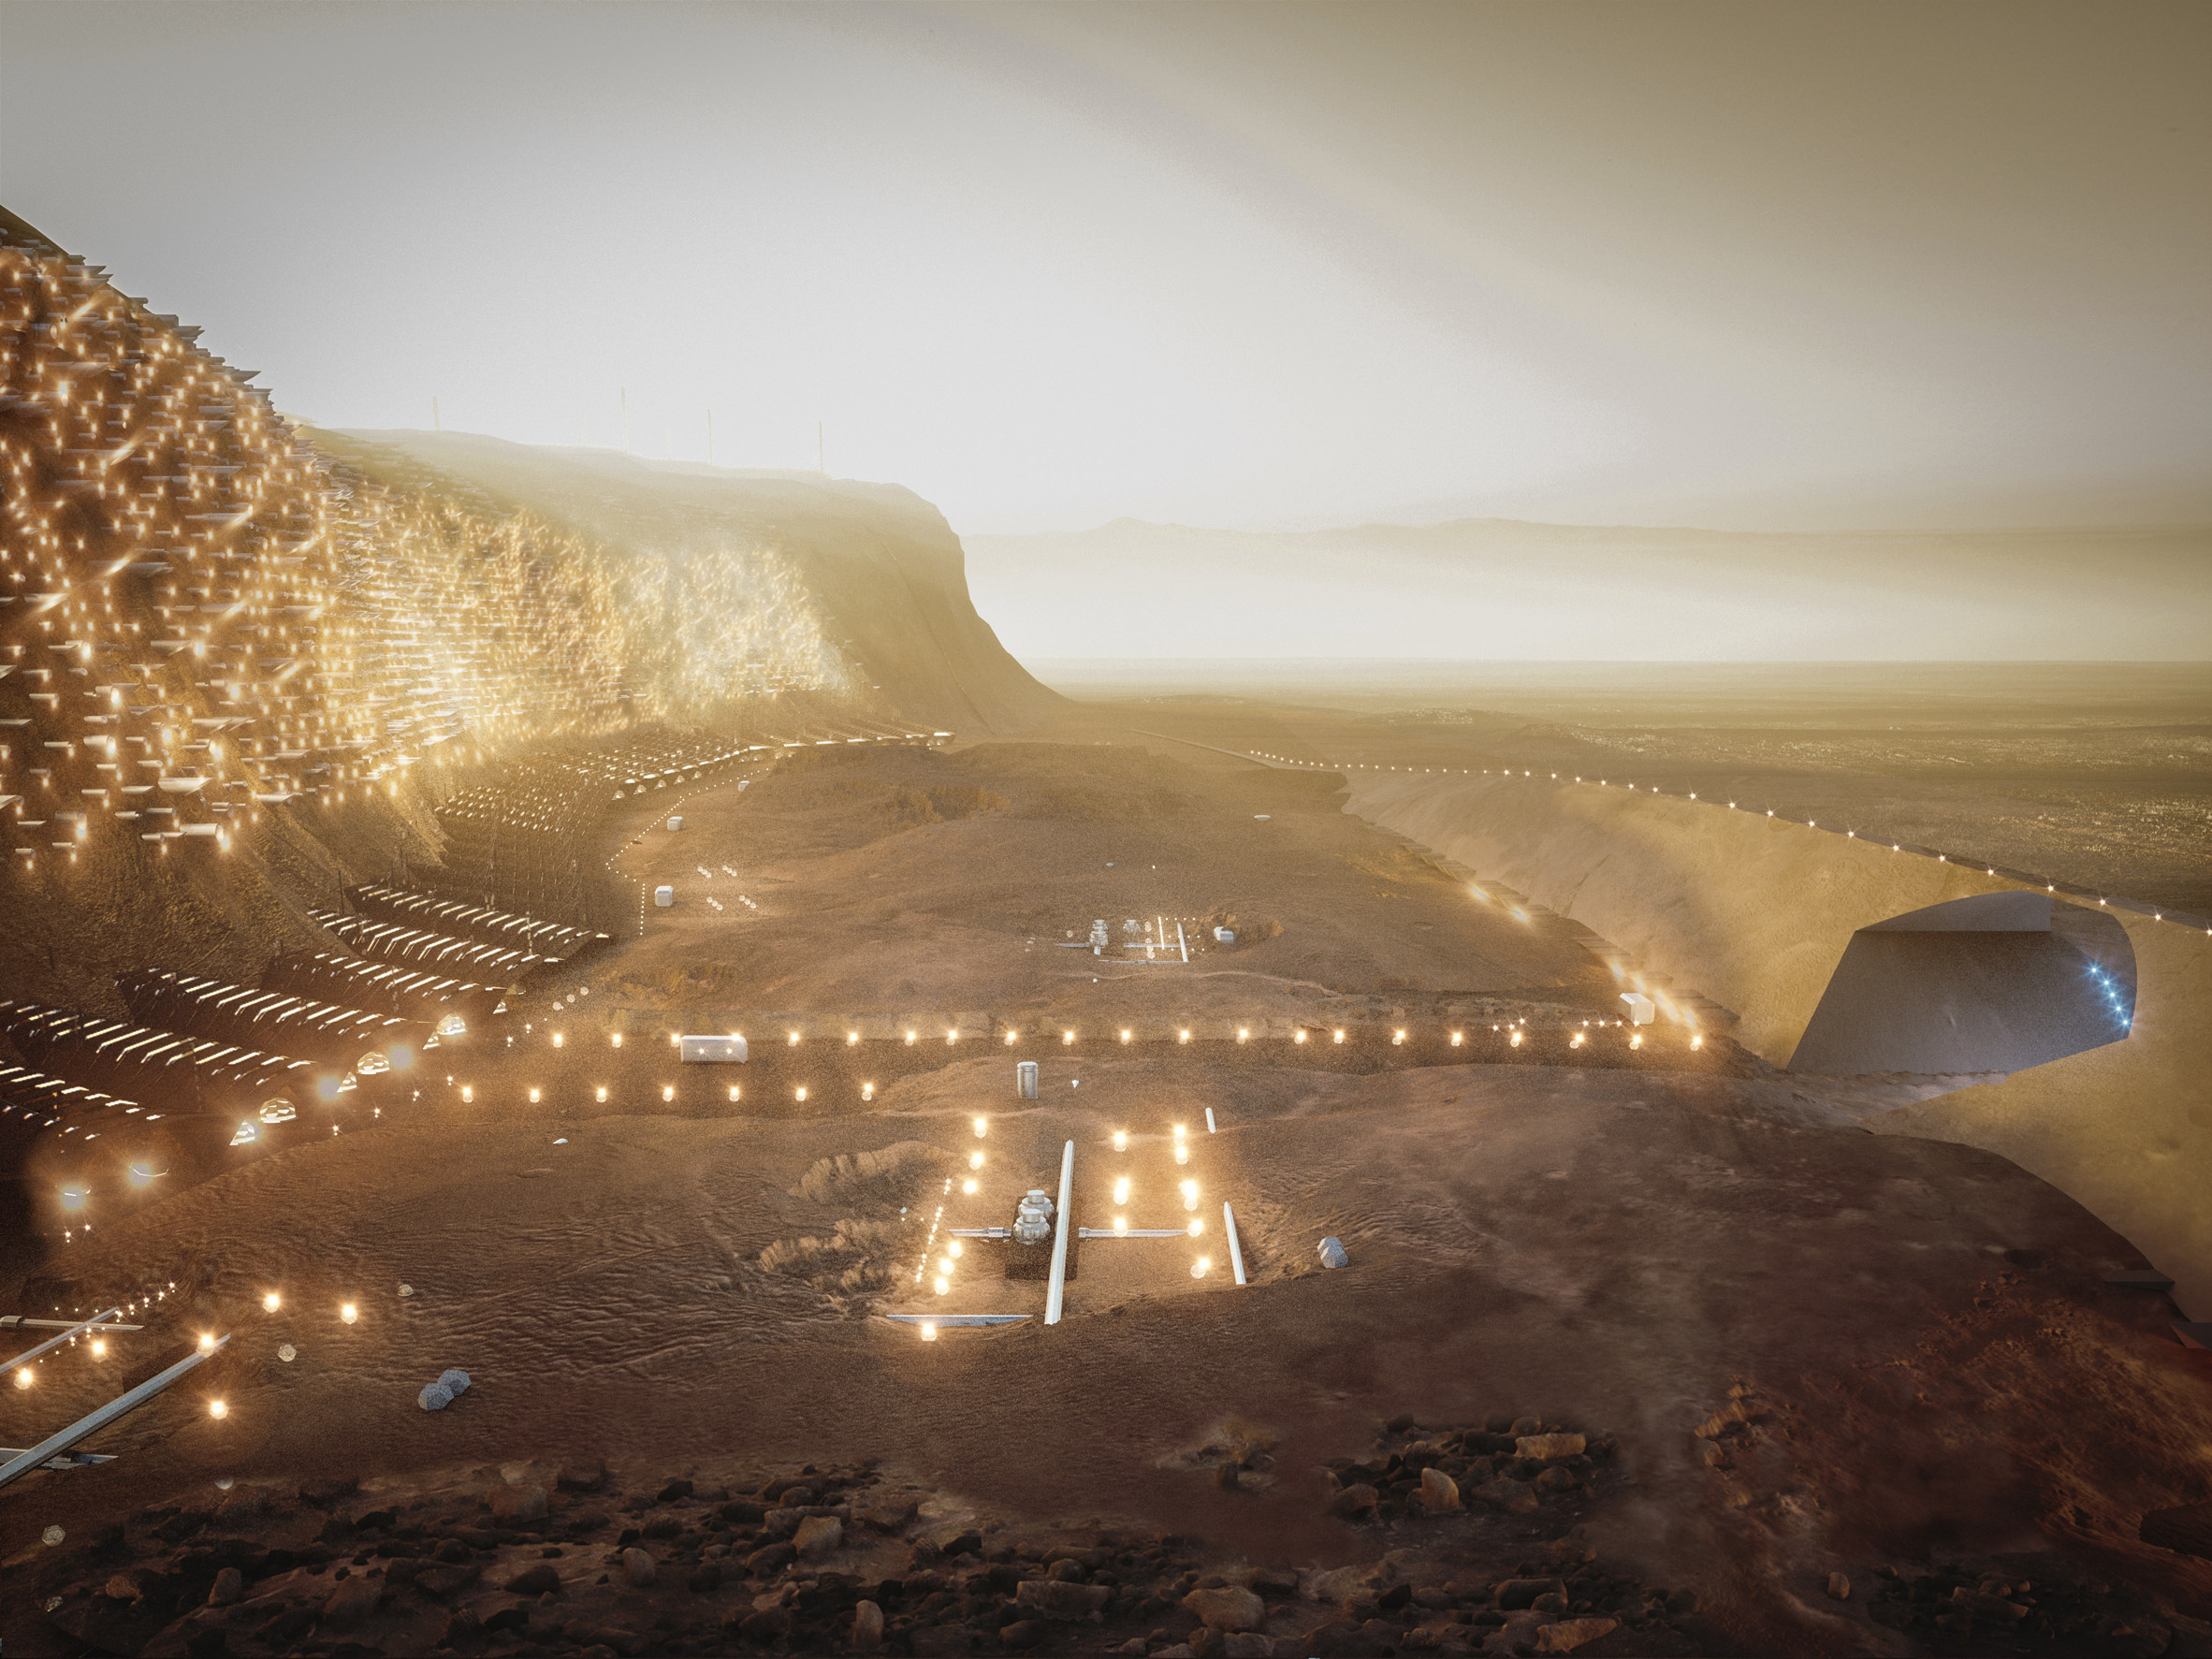 Mars city Nüwa would be built into a cliff